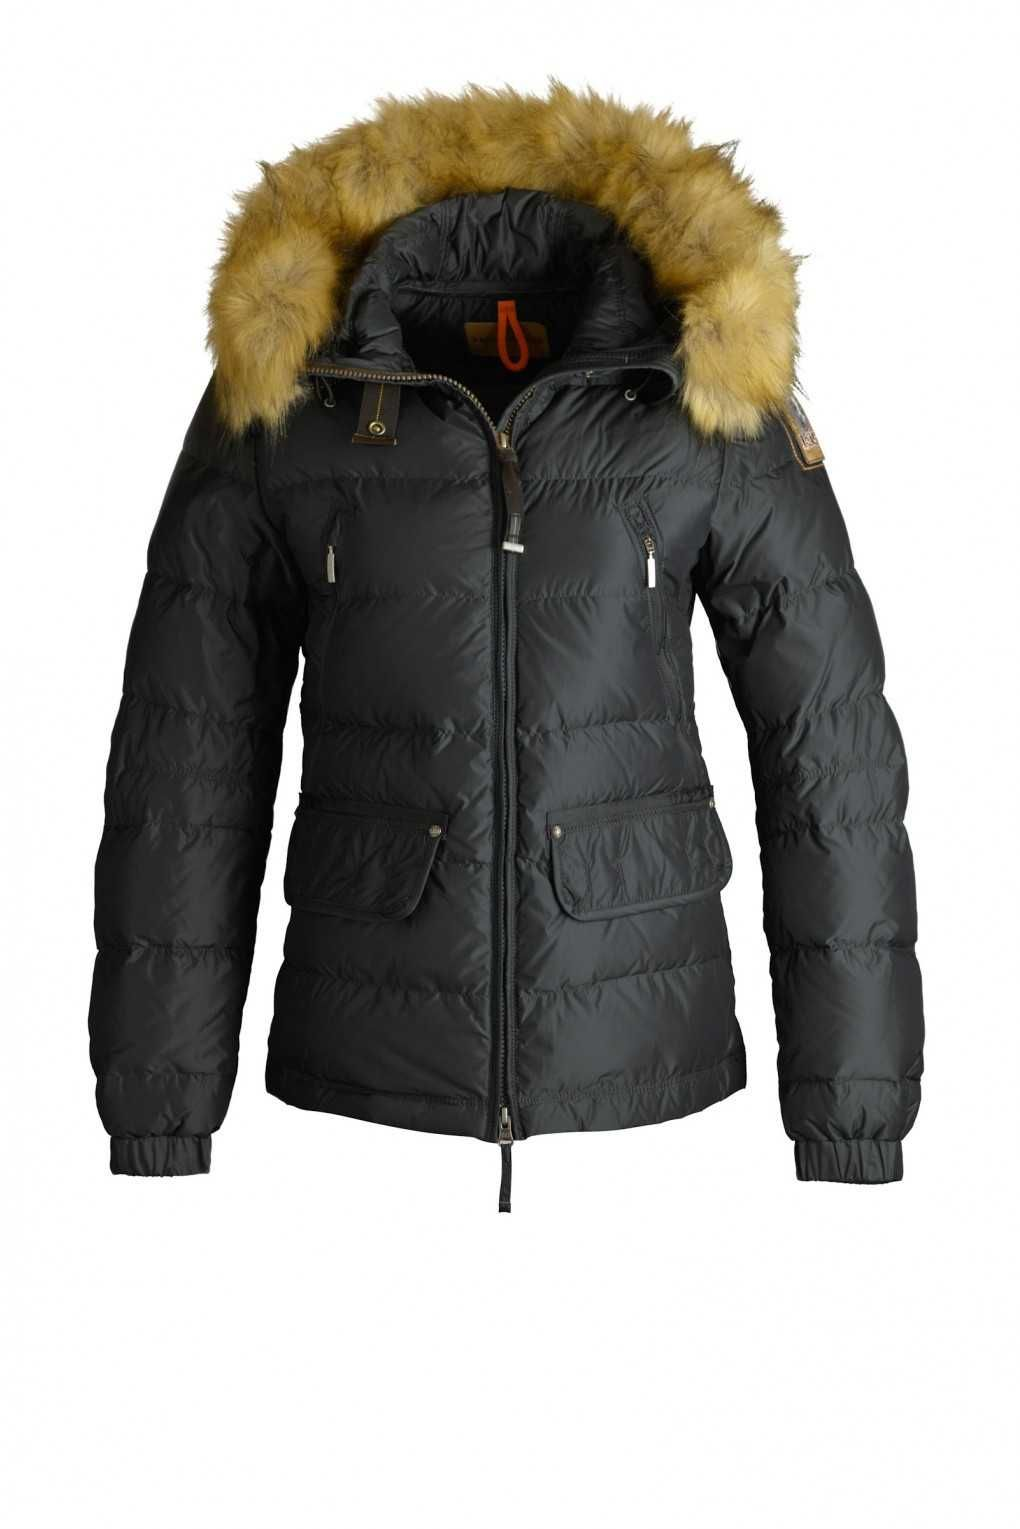 parajumpers jacket sale